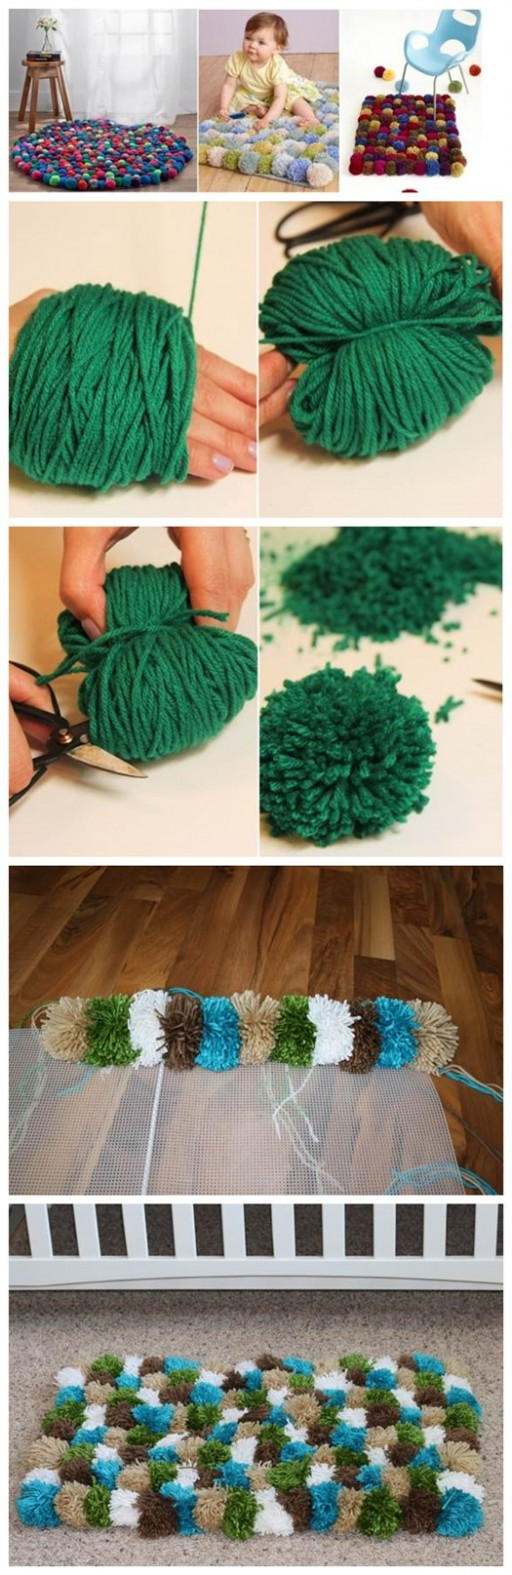 How To Make DIY Pom Pom Rugs Tutorial 2